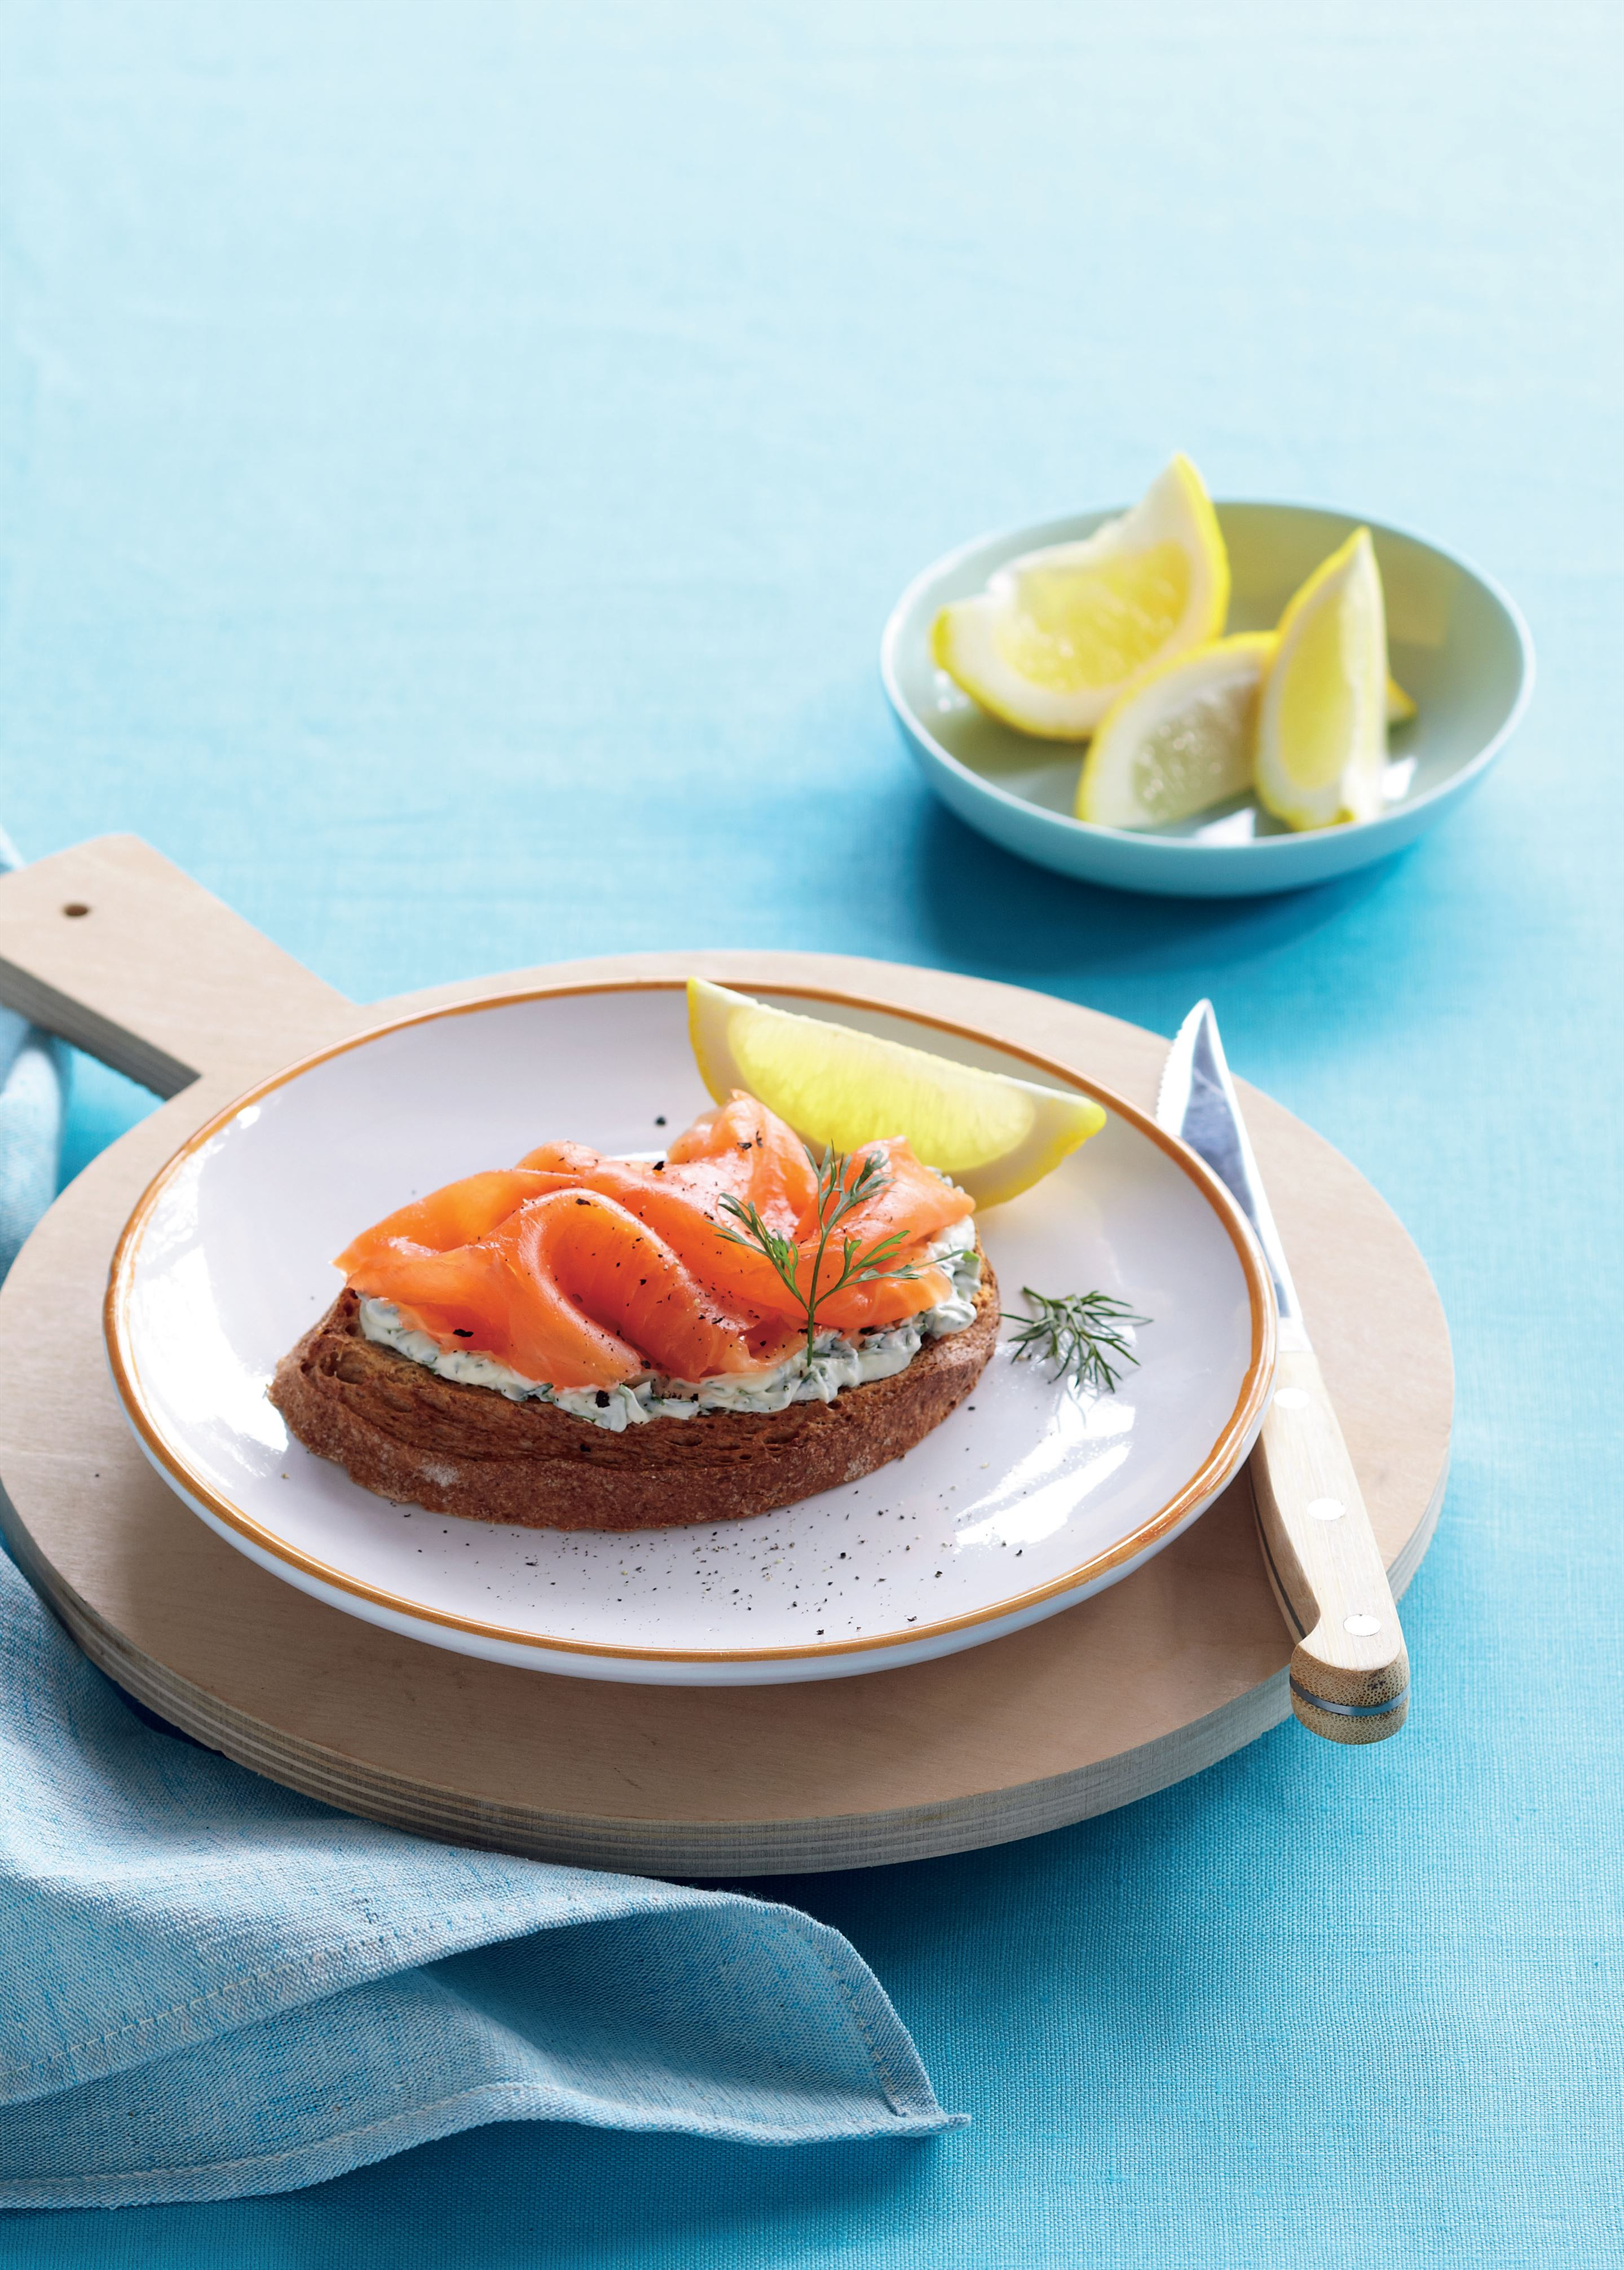 Smoked salmon with herbed cream cheese